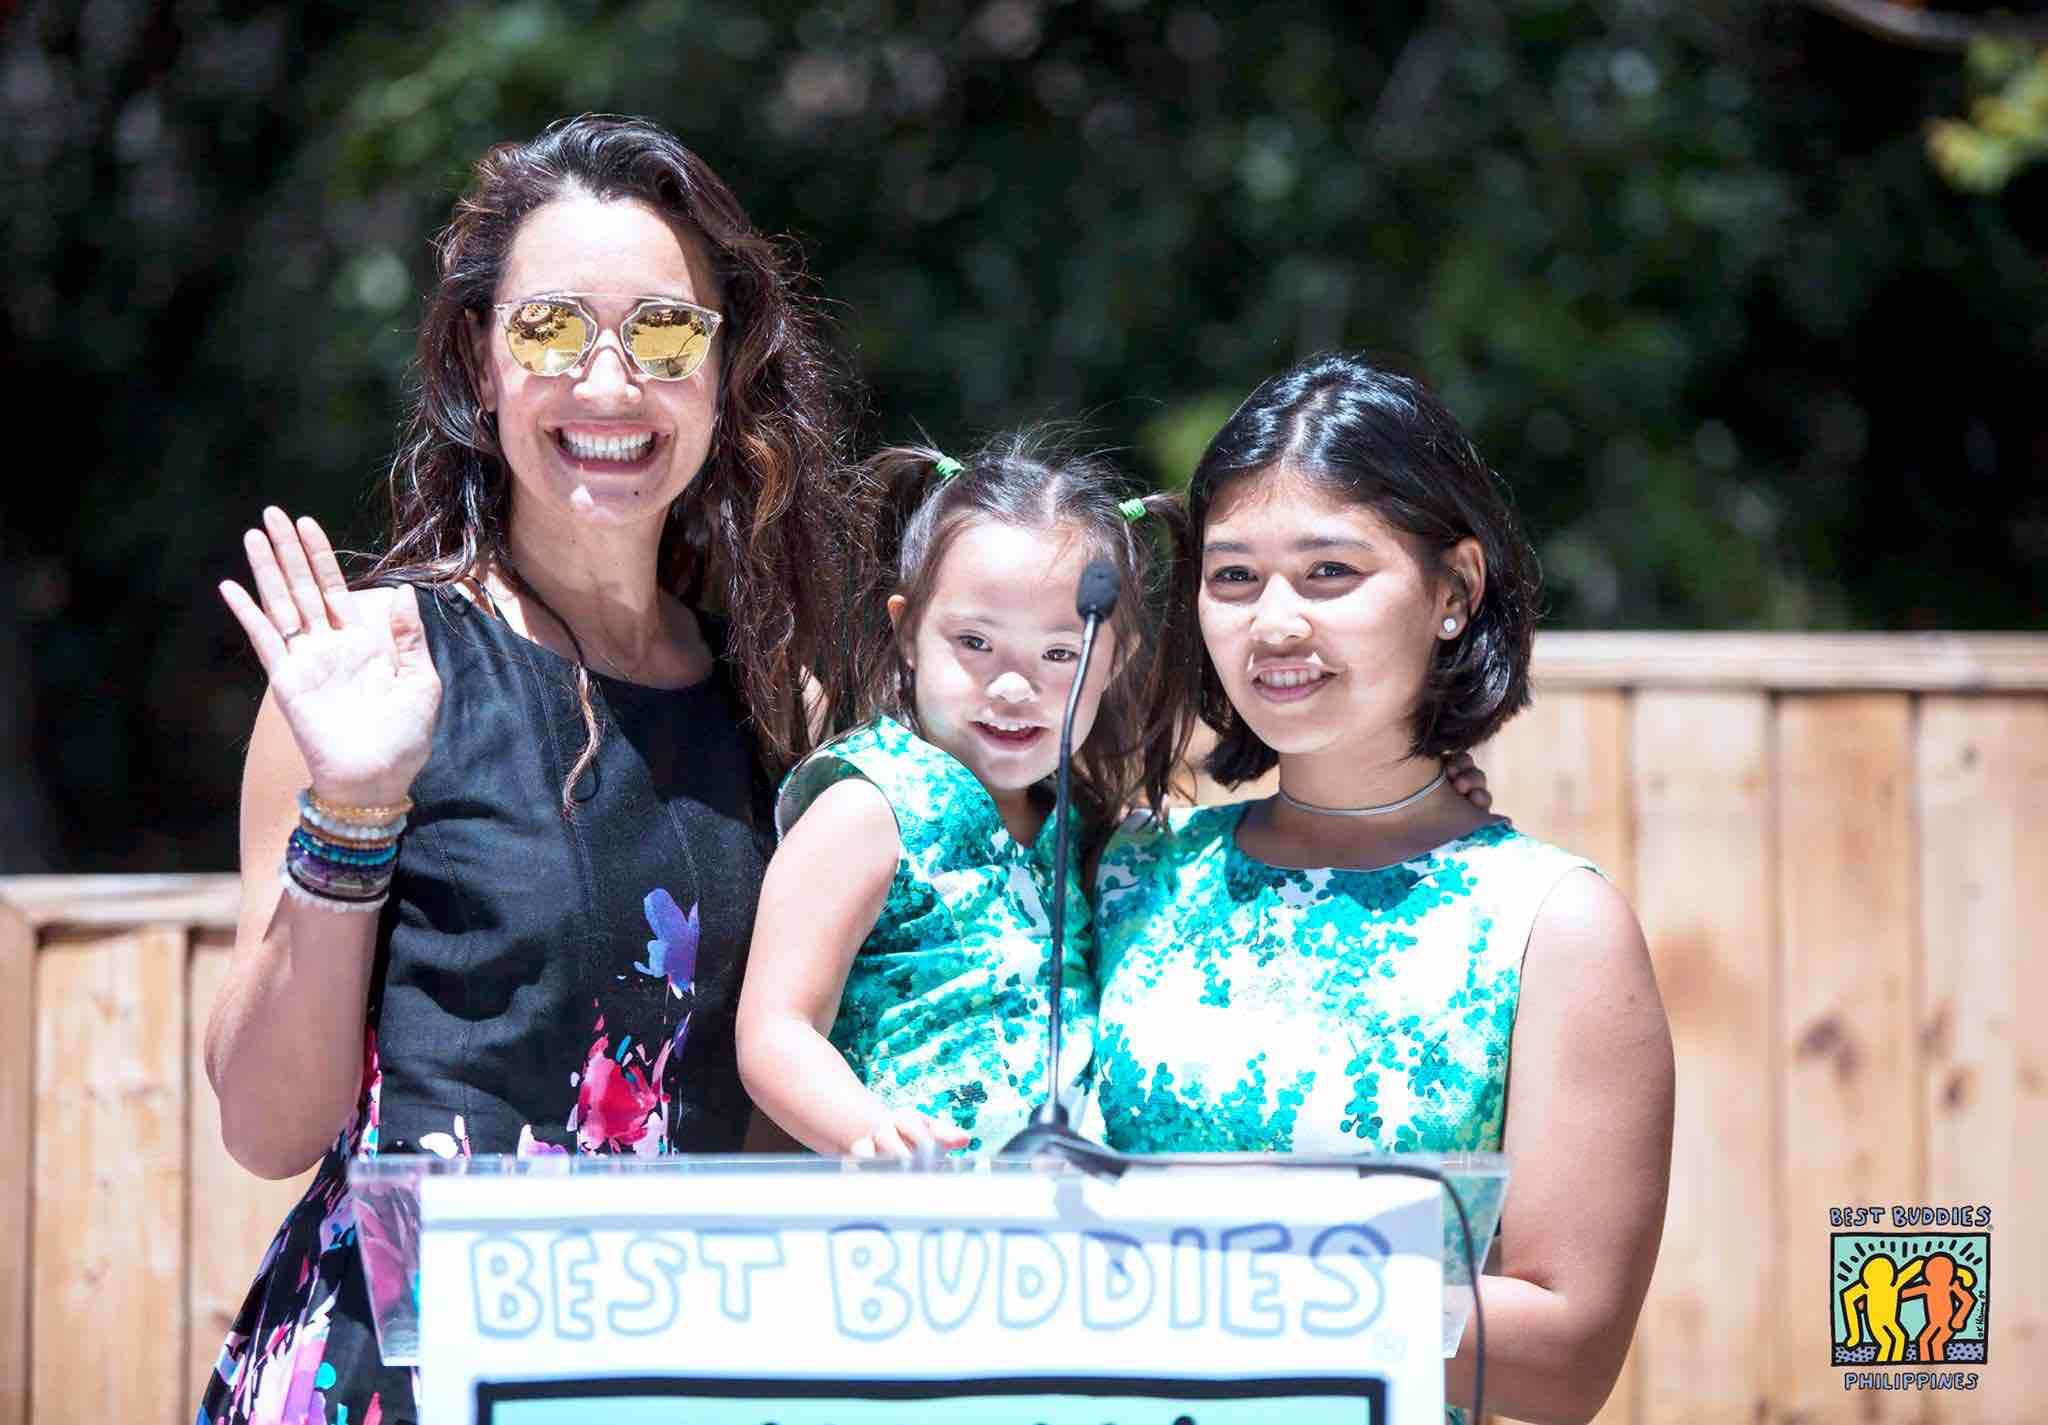 MOTHER OF THE YEAR. Filipina blogger and PWD advocate Michelle Ressa Aventejado, who is Best Buddies International's Mother of the Year, is all smiles with her daughters Gelli and Gia. Photo courtesy of Best Buddies Philippines